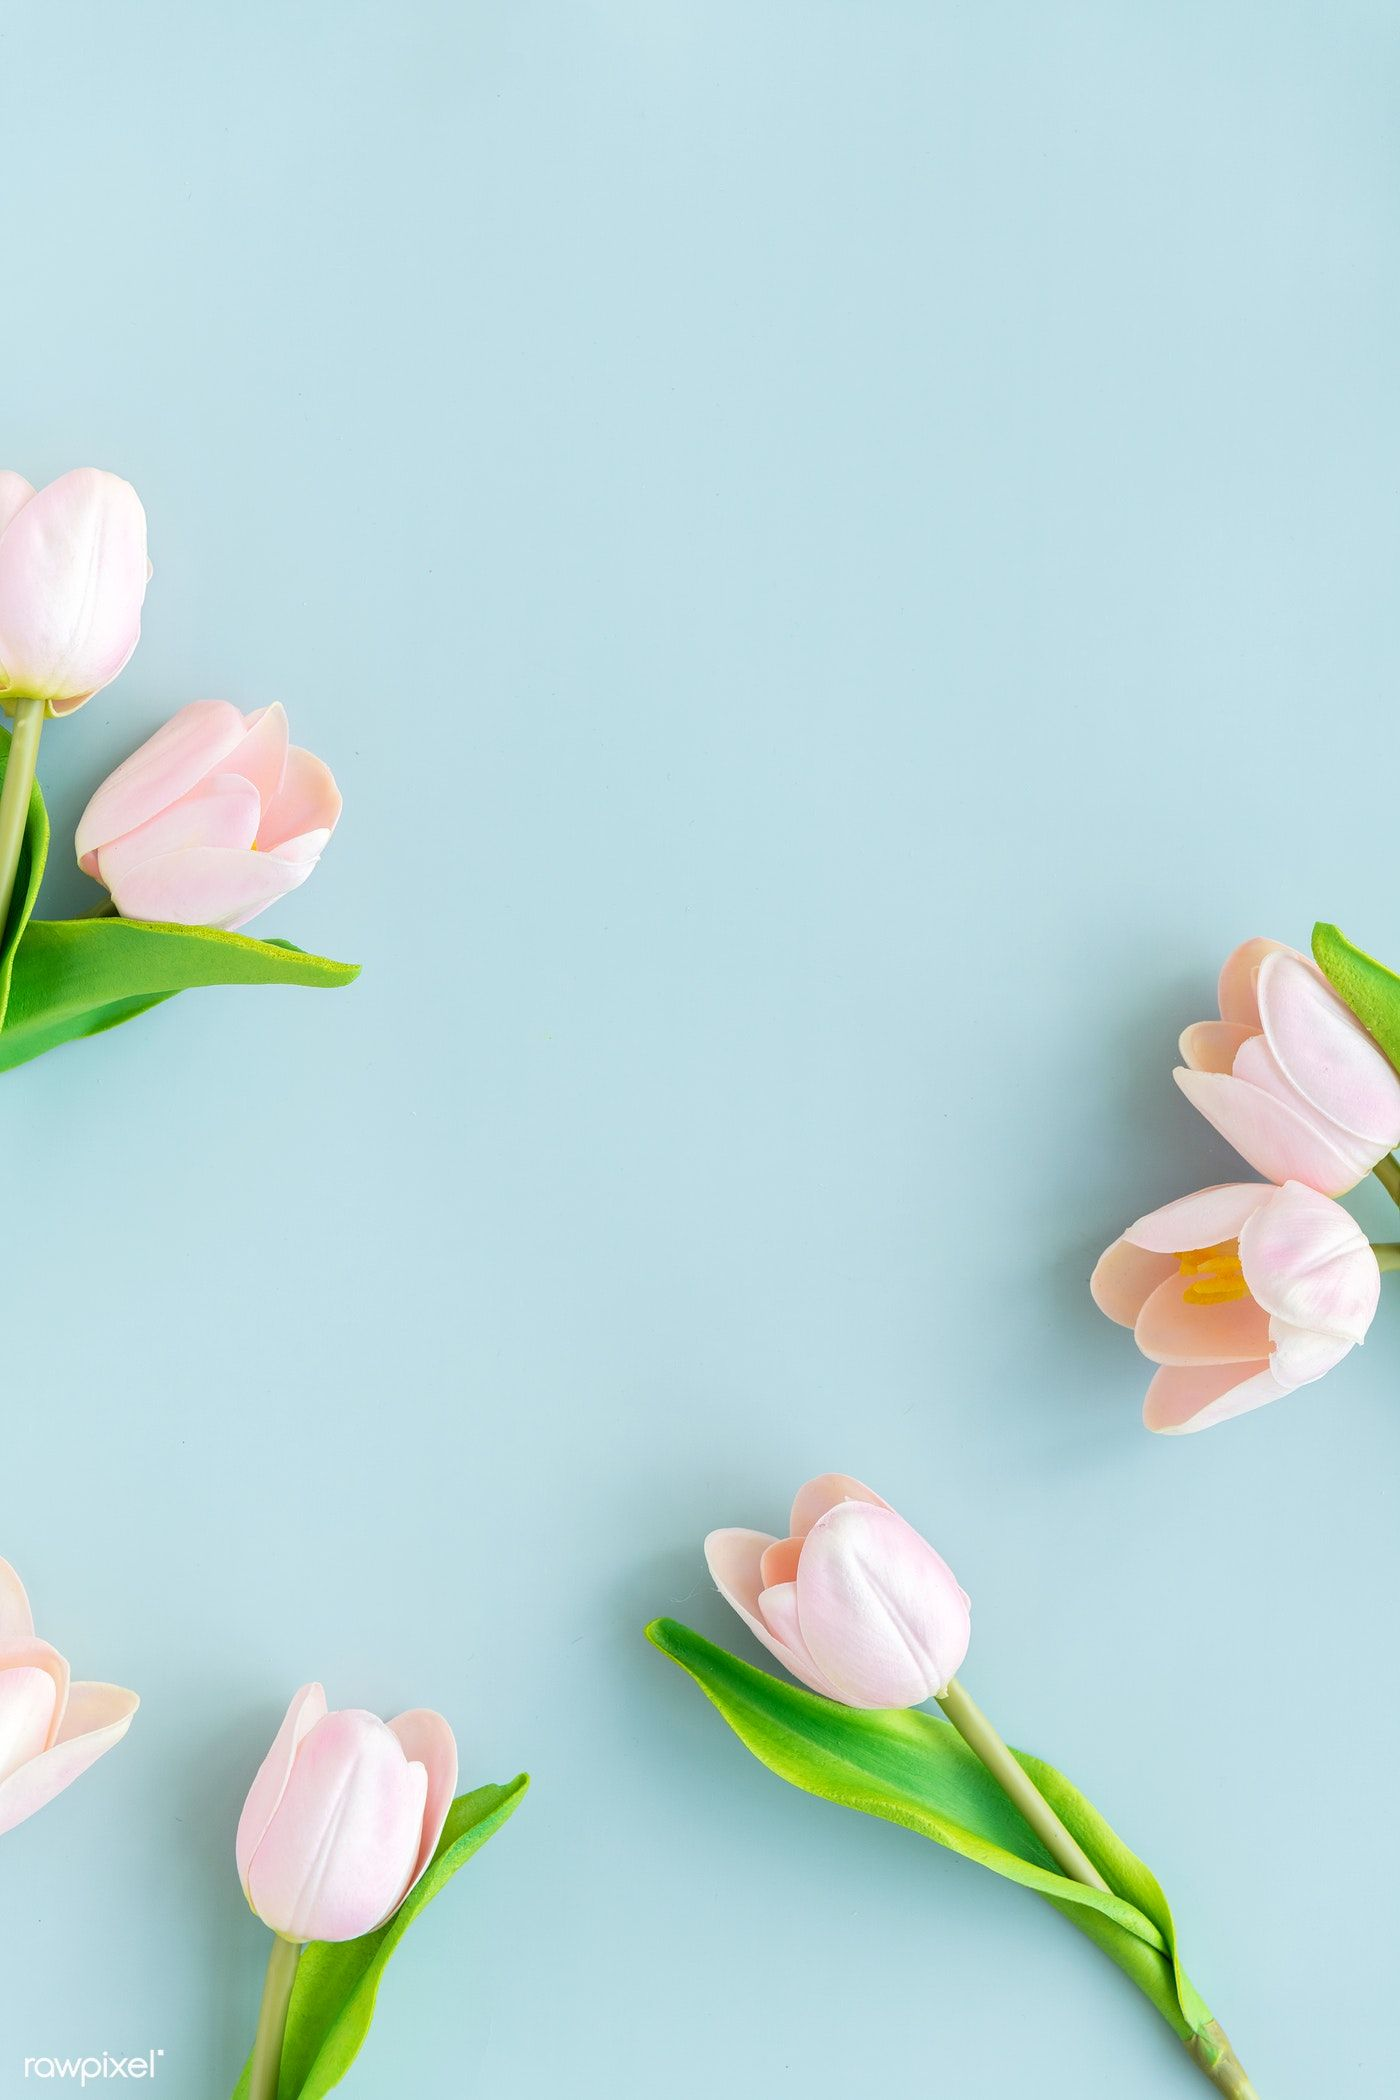 Download Premium Image Of Light Pink Tulips On Blank Blue